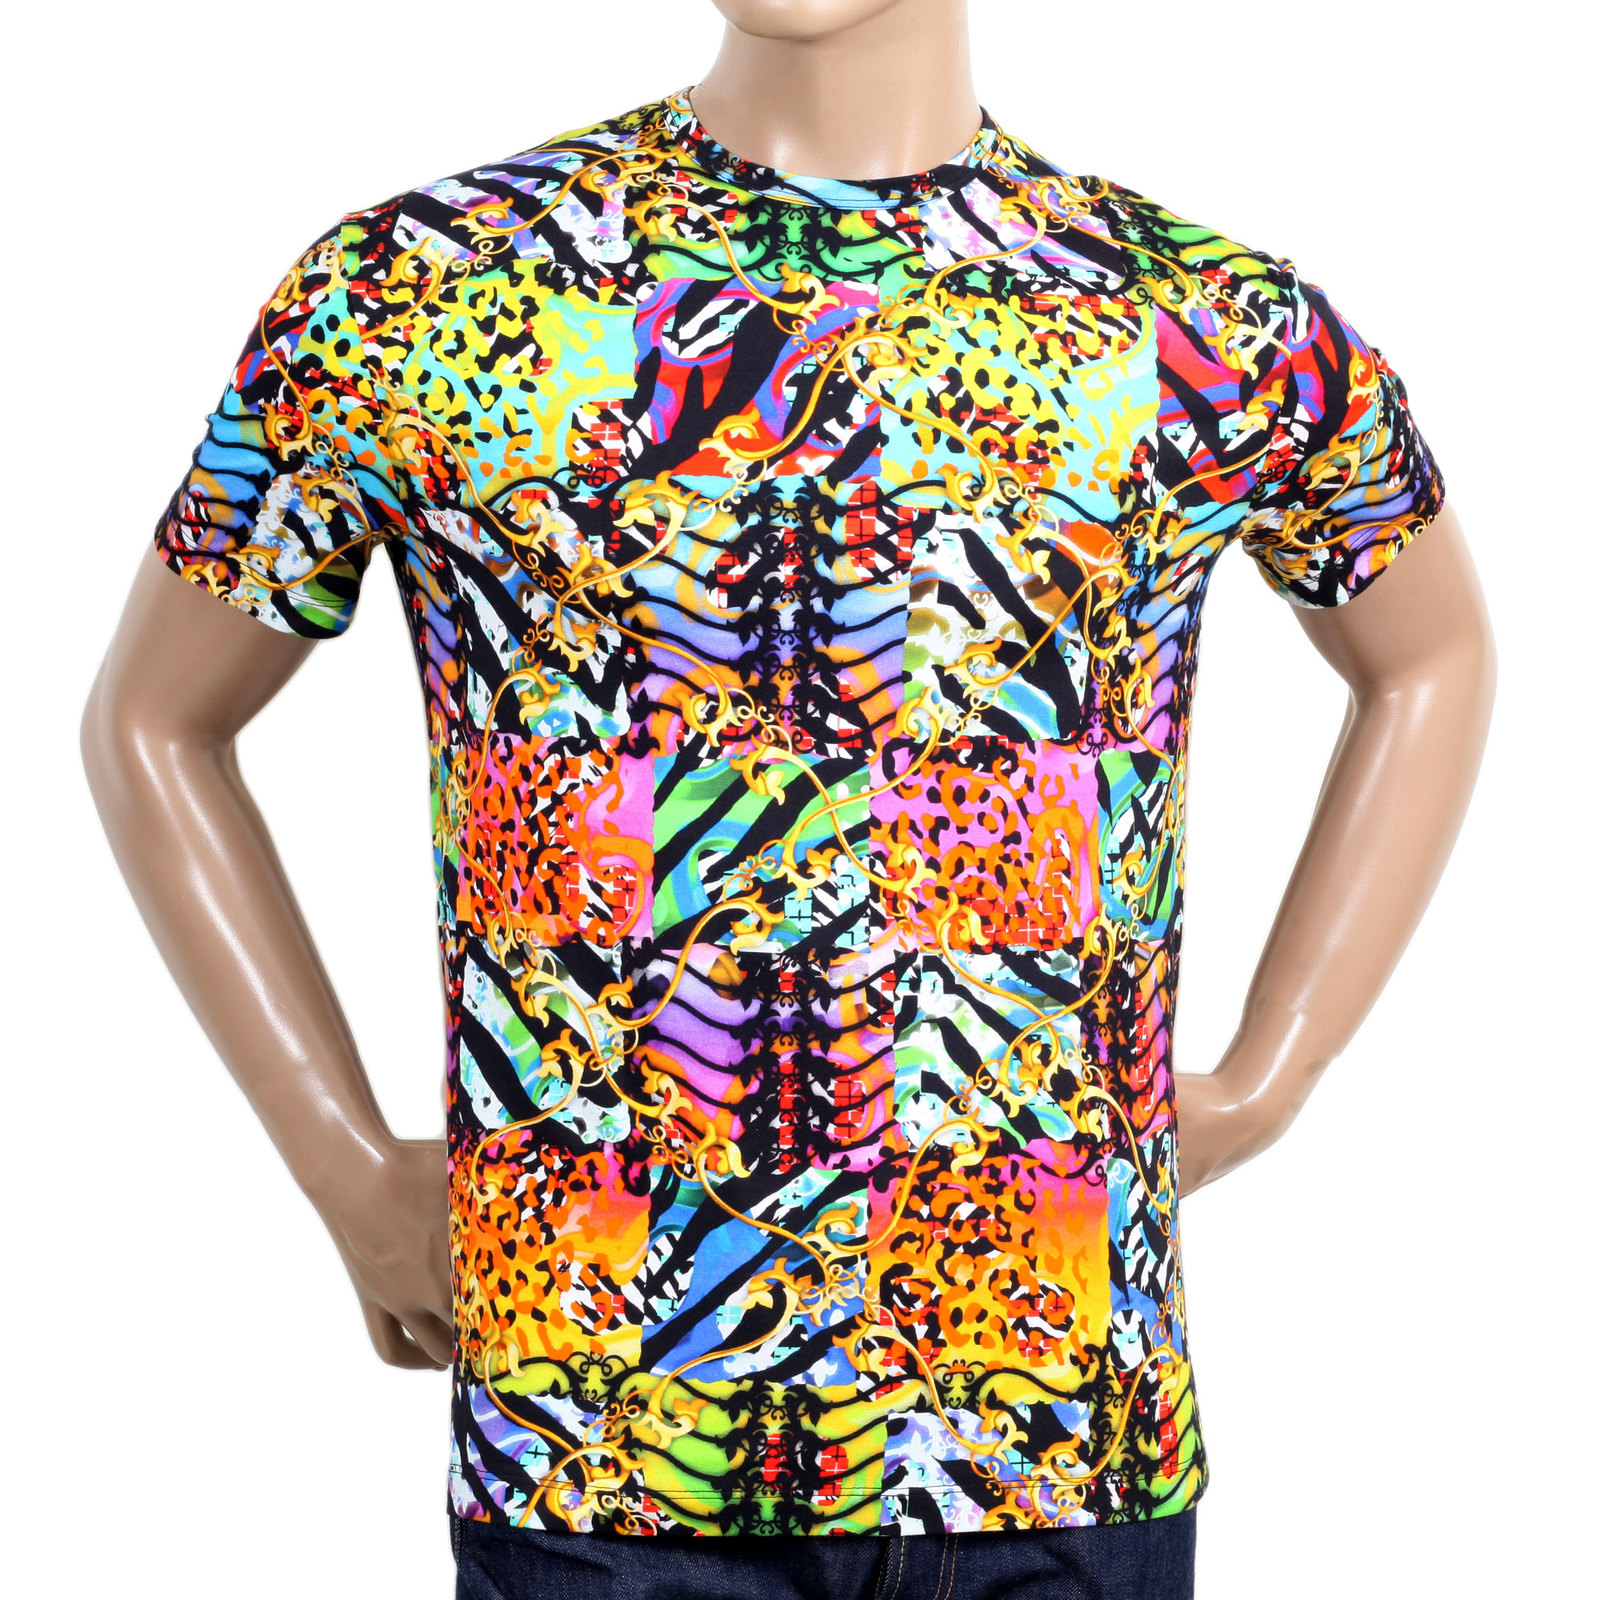 Stylish t shirt with prints in multi colour by versace for Colour t shirt printing